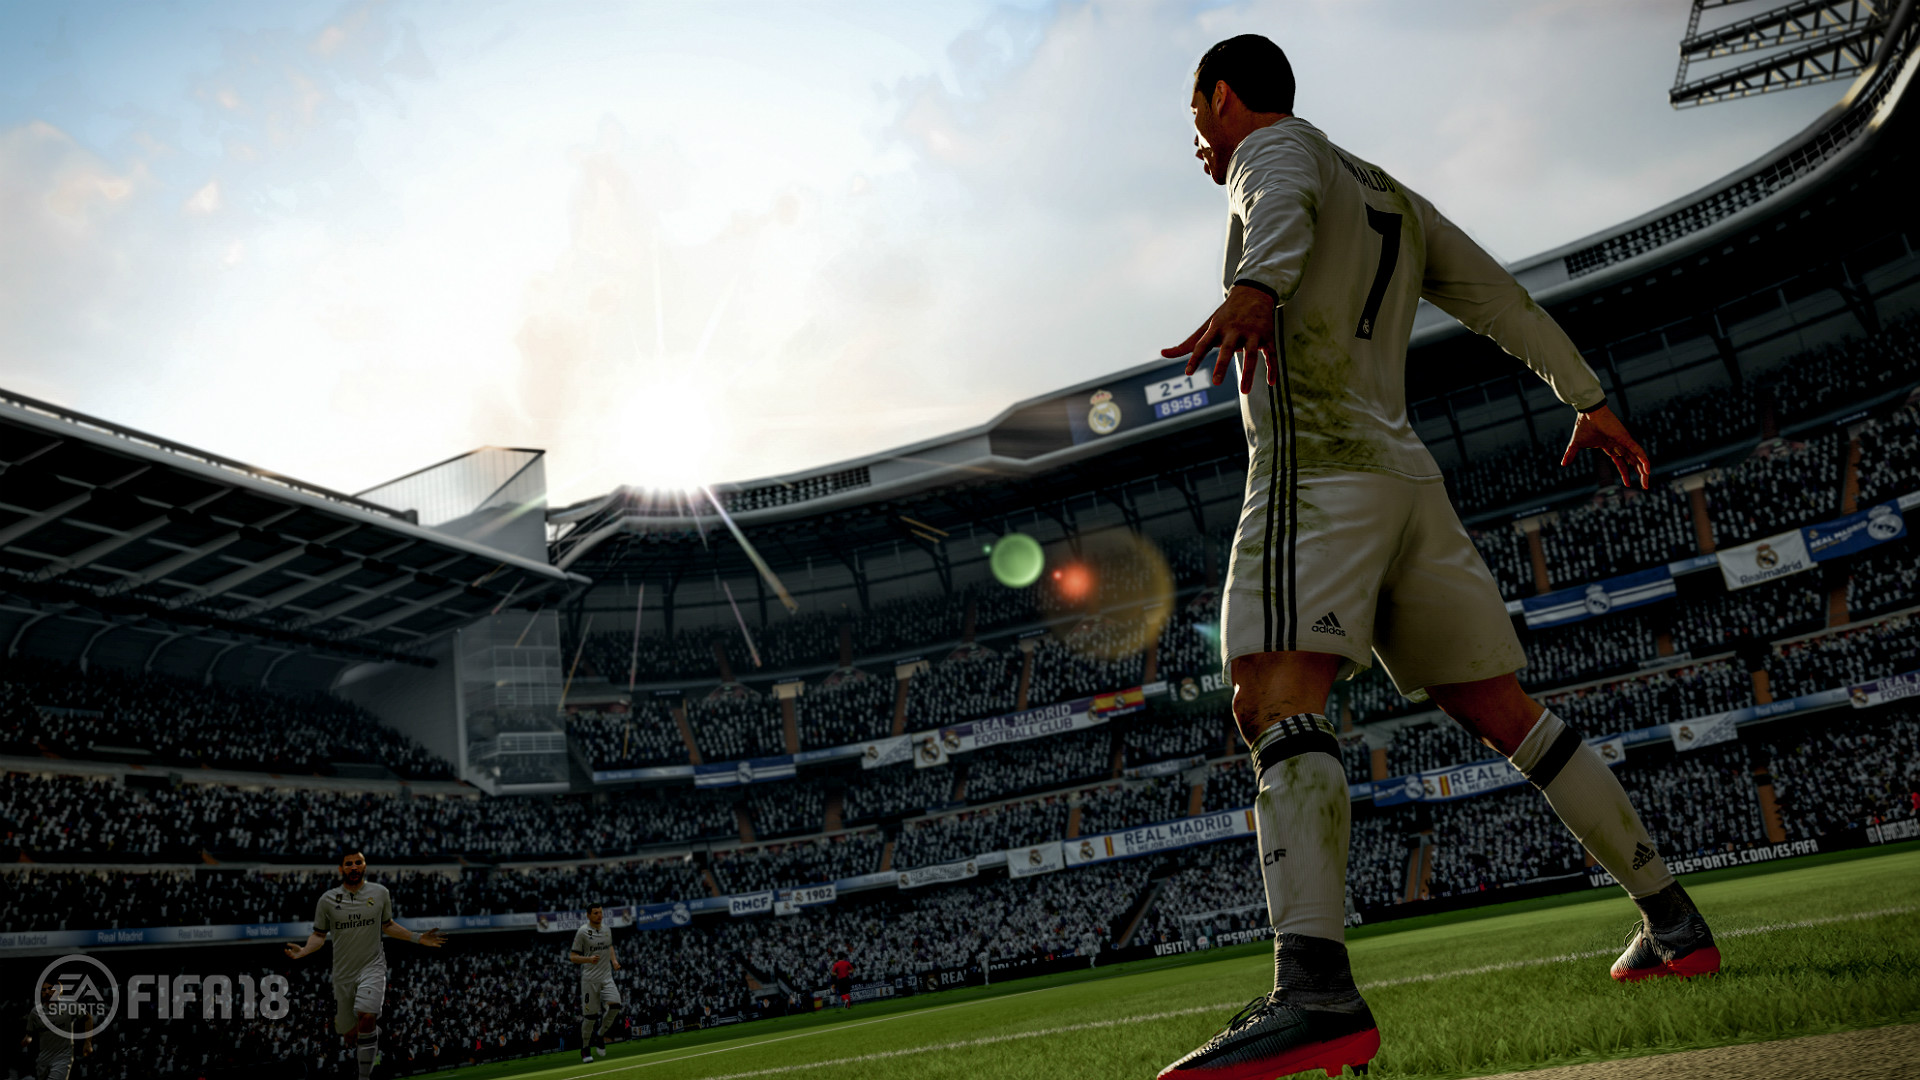 FIFA18 SCREENSHOT